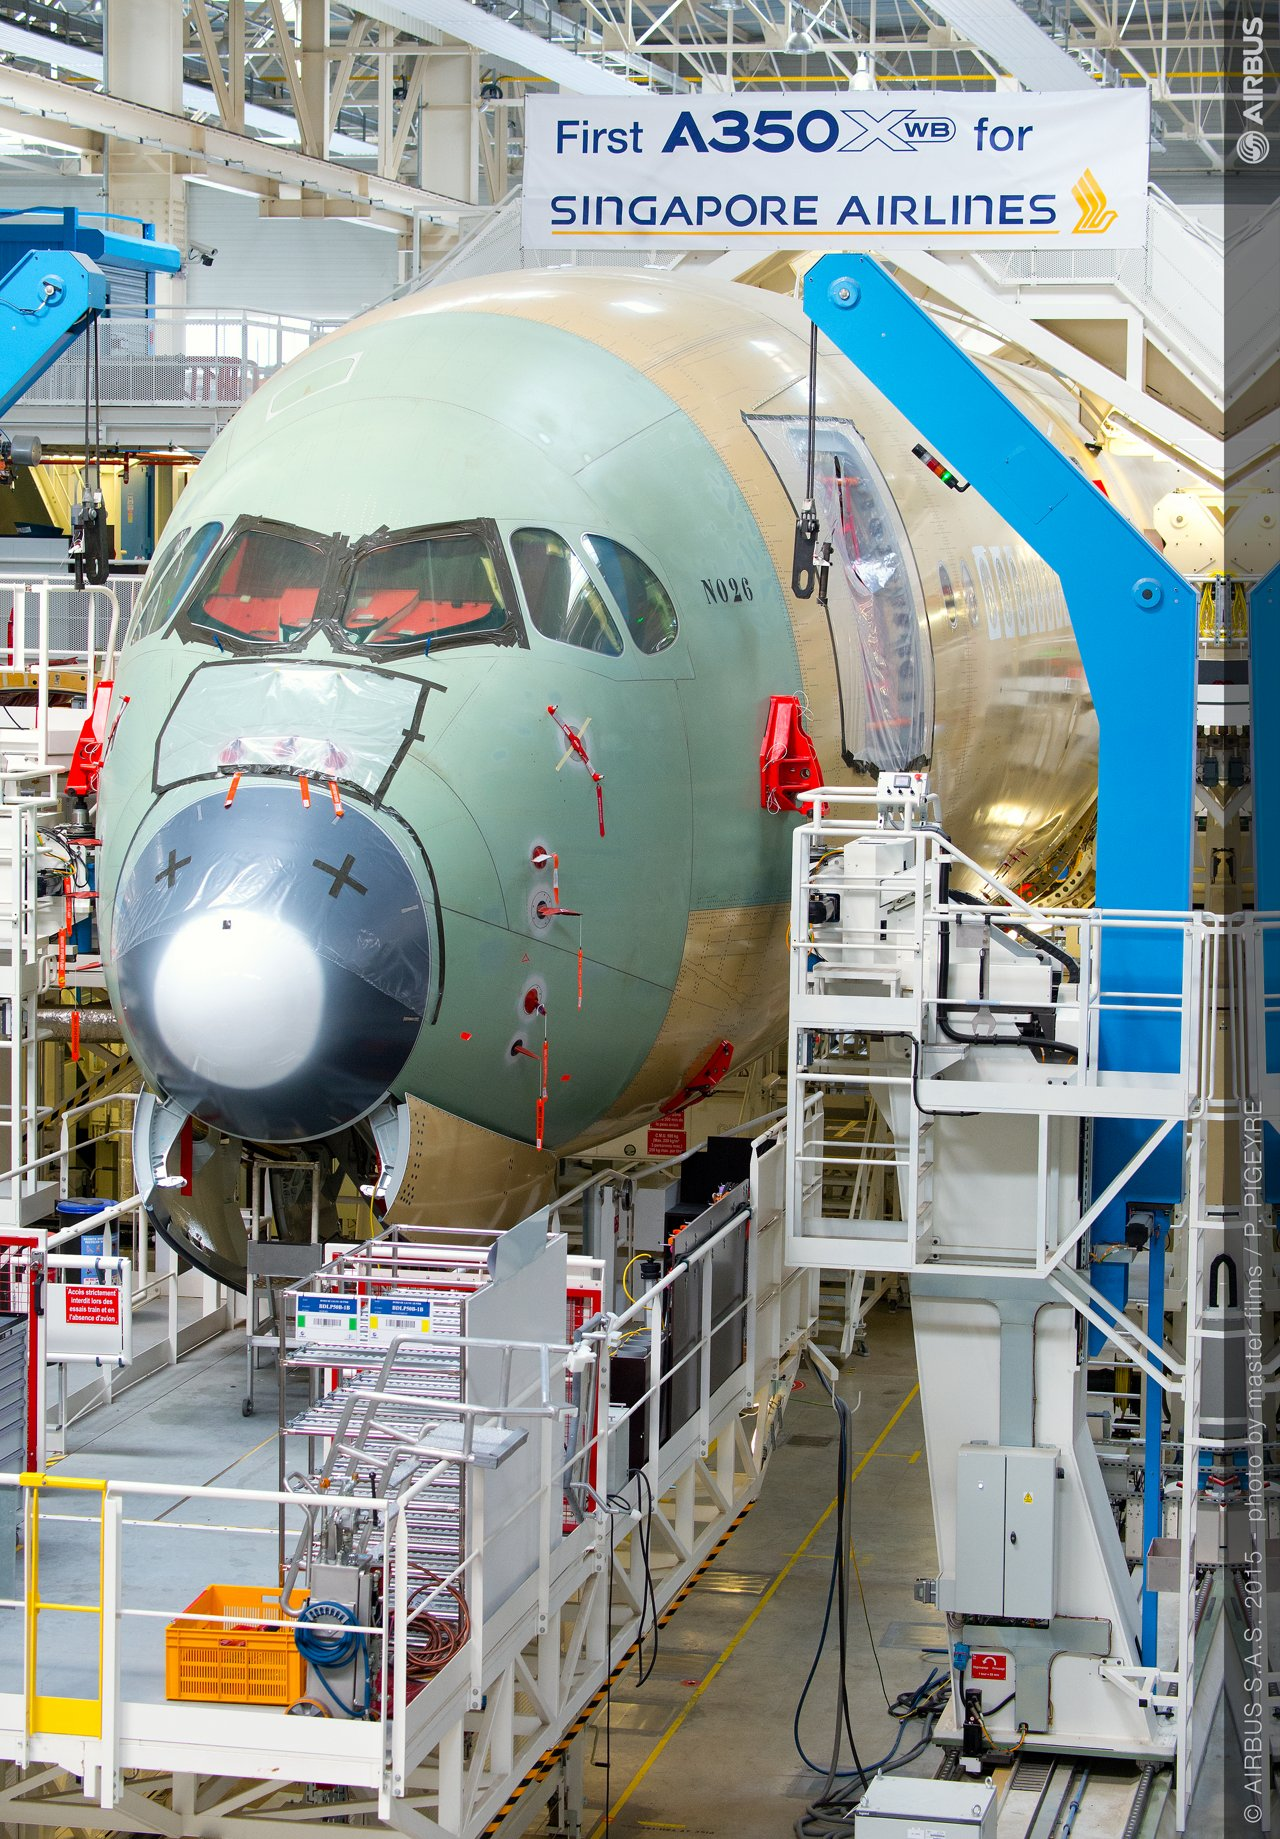 Singapore Airlines_A350 XWB assembly